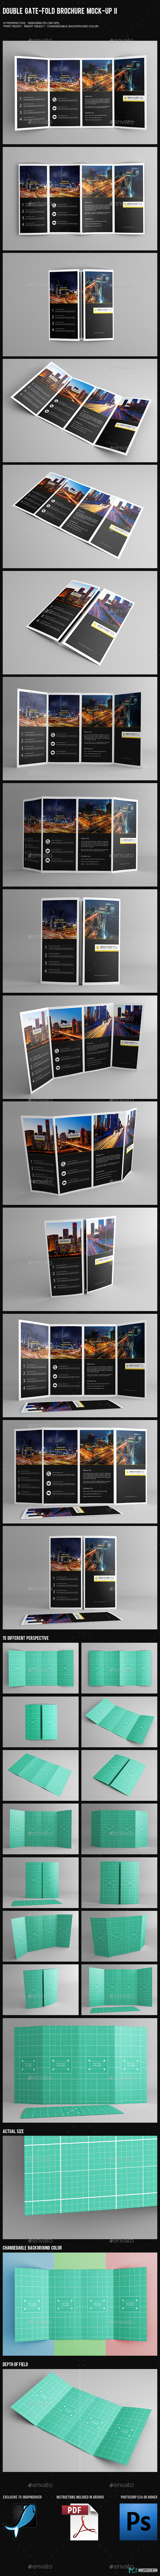 GraphicRiver Double Gate-Fold Brochure Mock-Up II 10159444